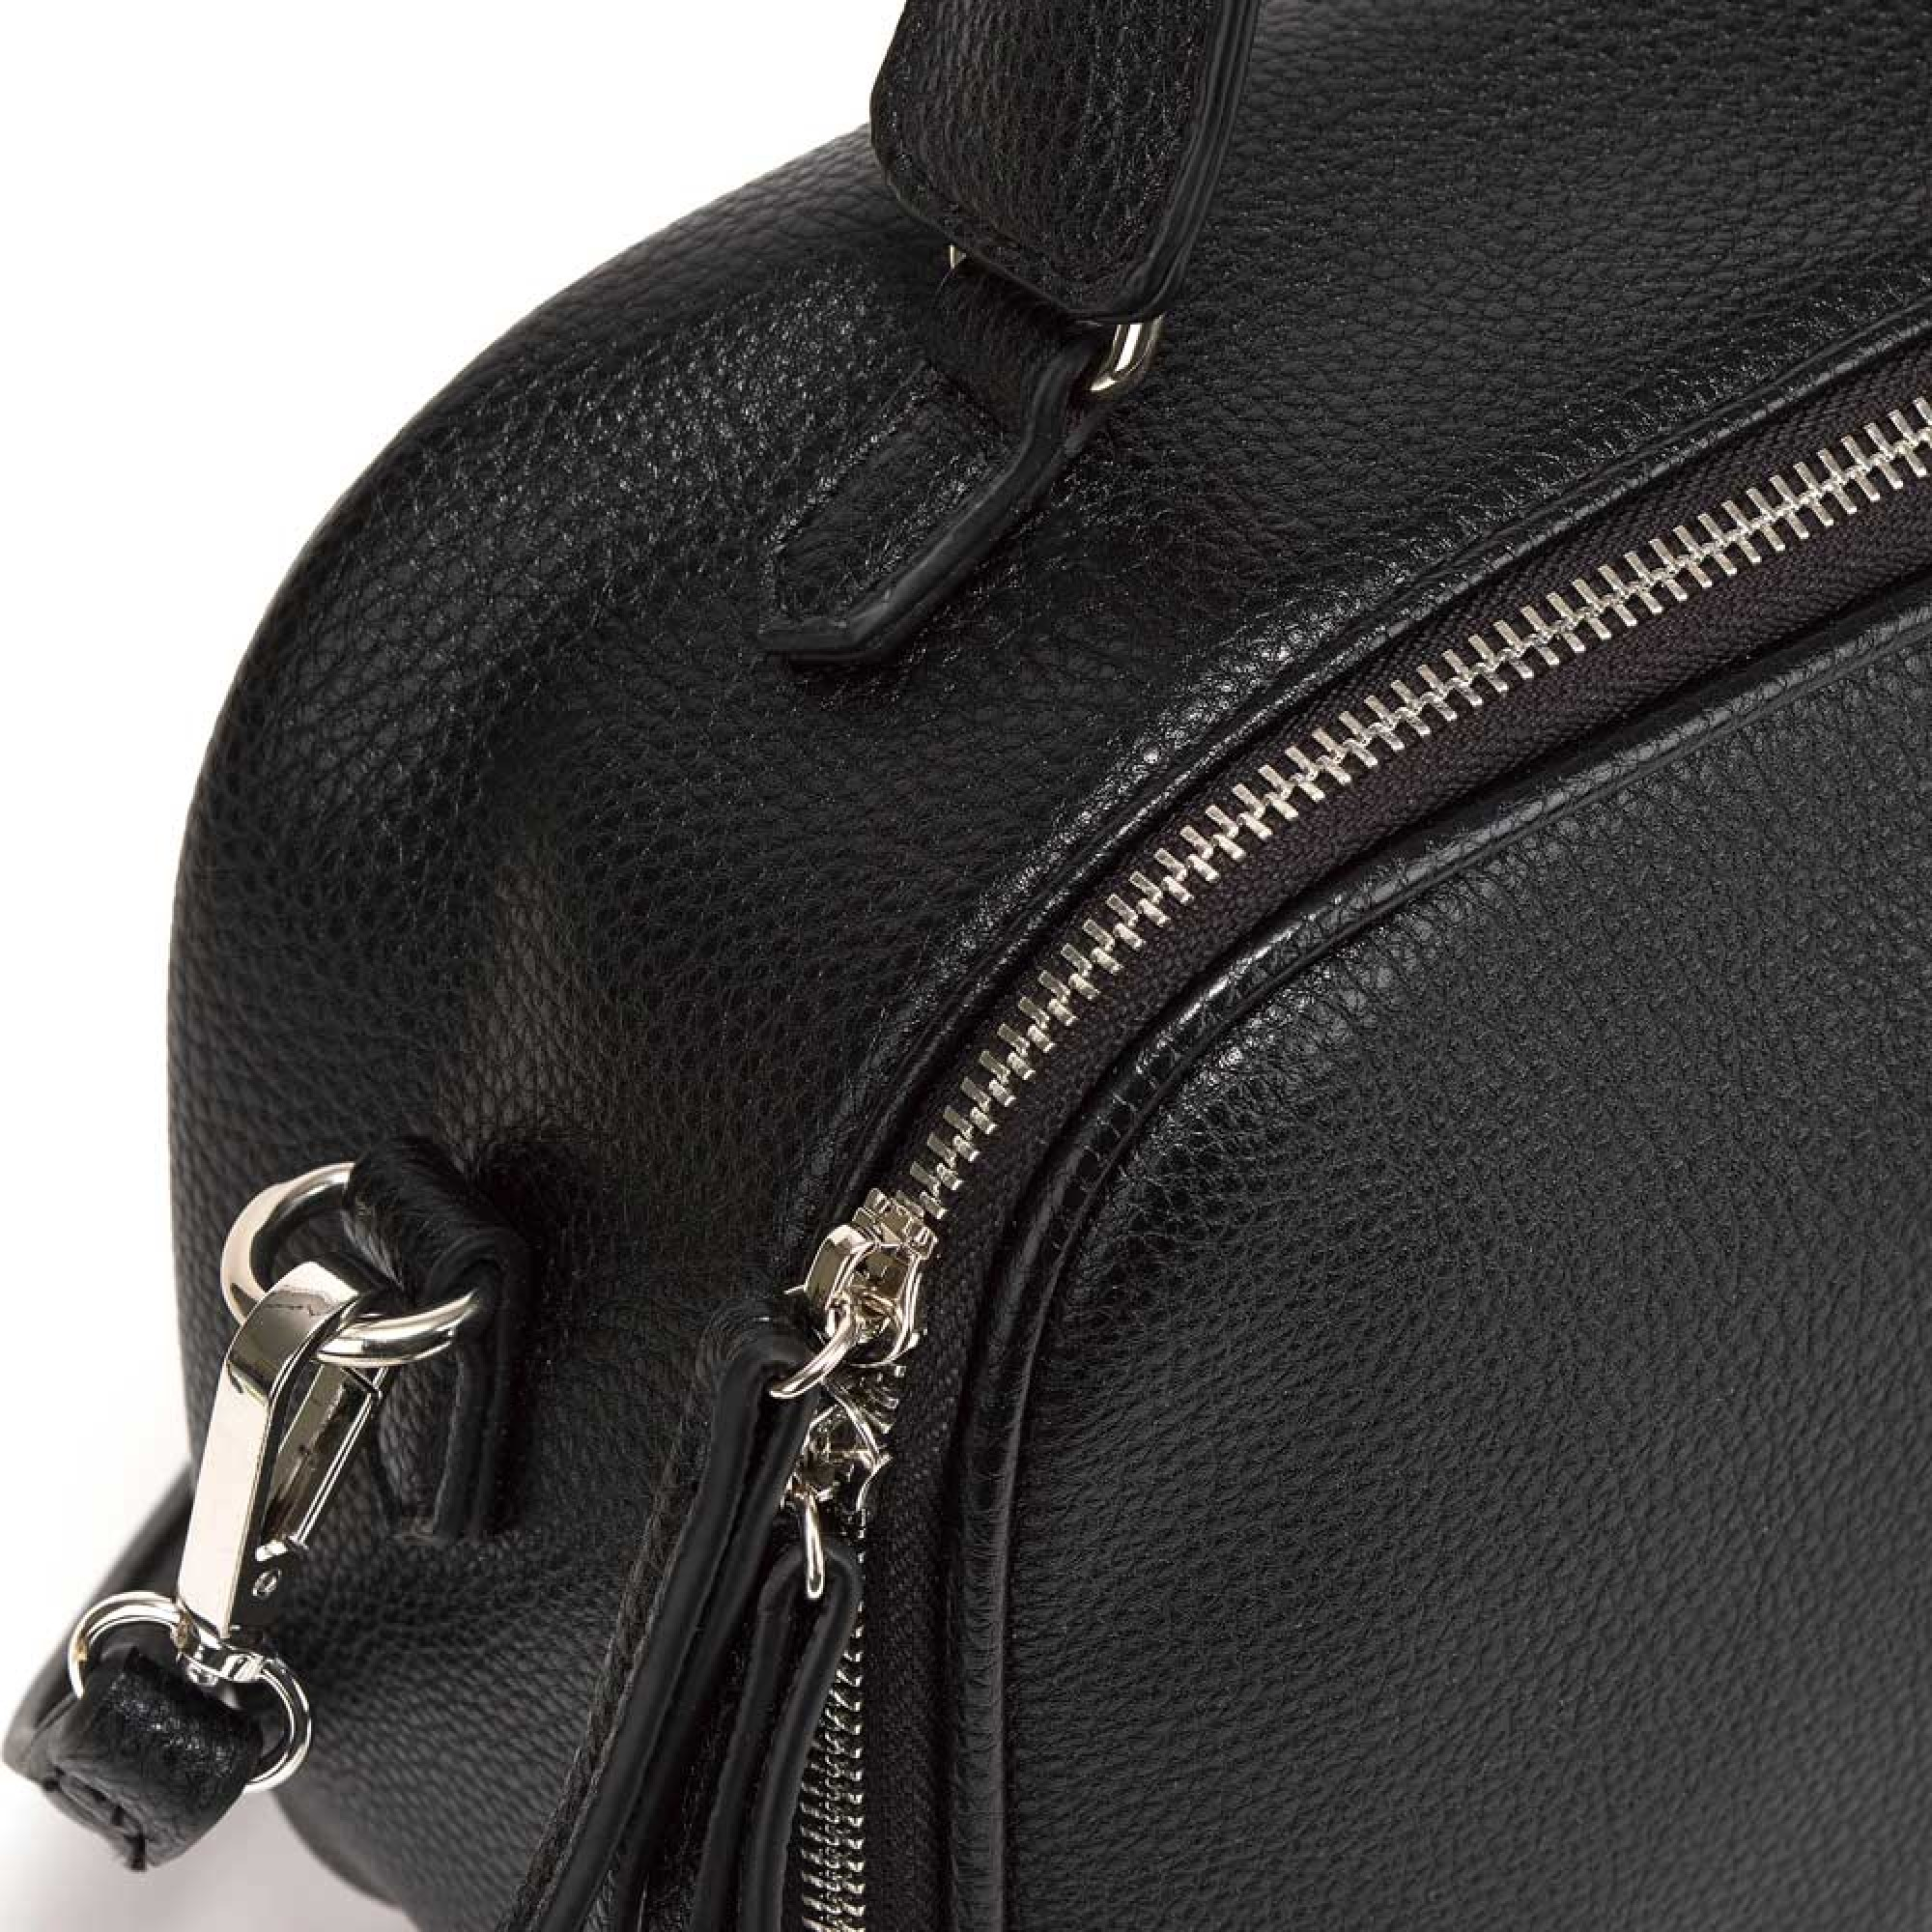 SHOULDER BAG - GBDA1419 - GAELLE PARIS